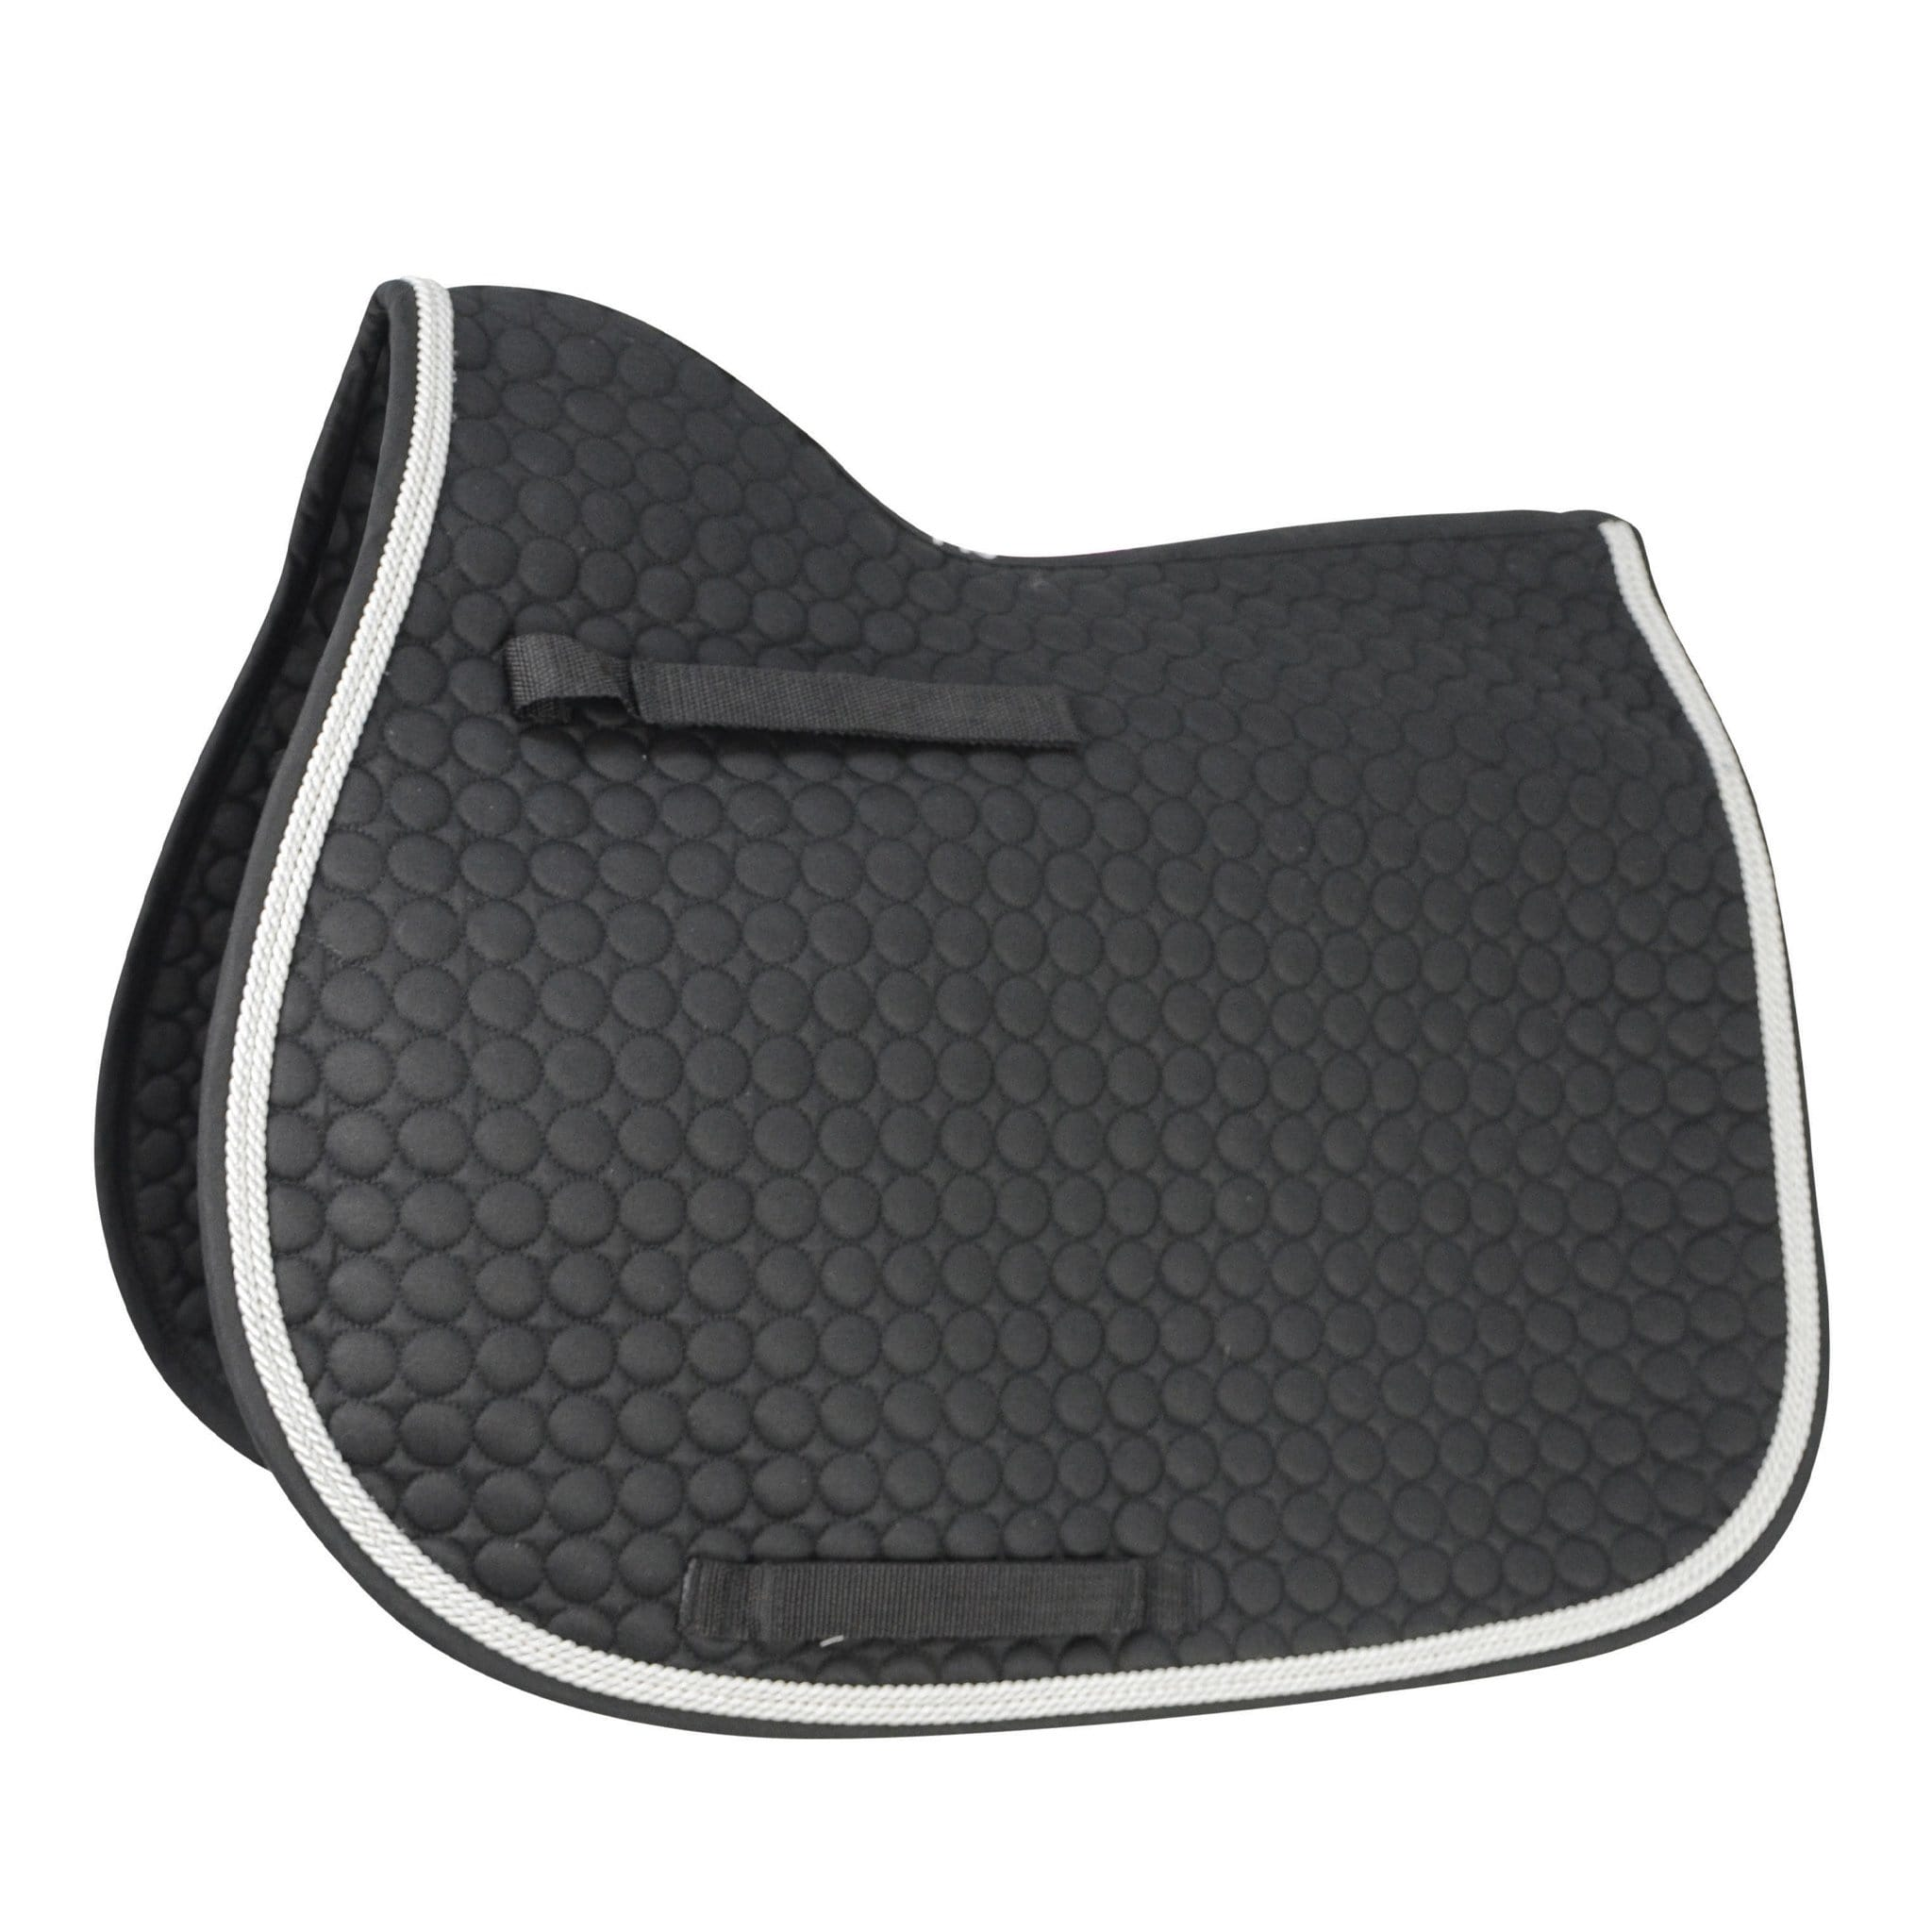 HyWITHER Double Braid Saddle Pad Black 10906